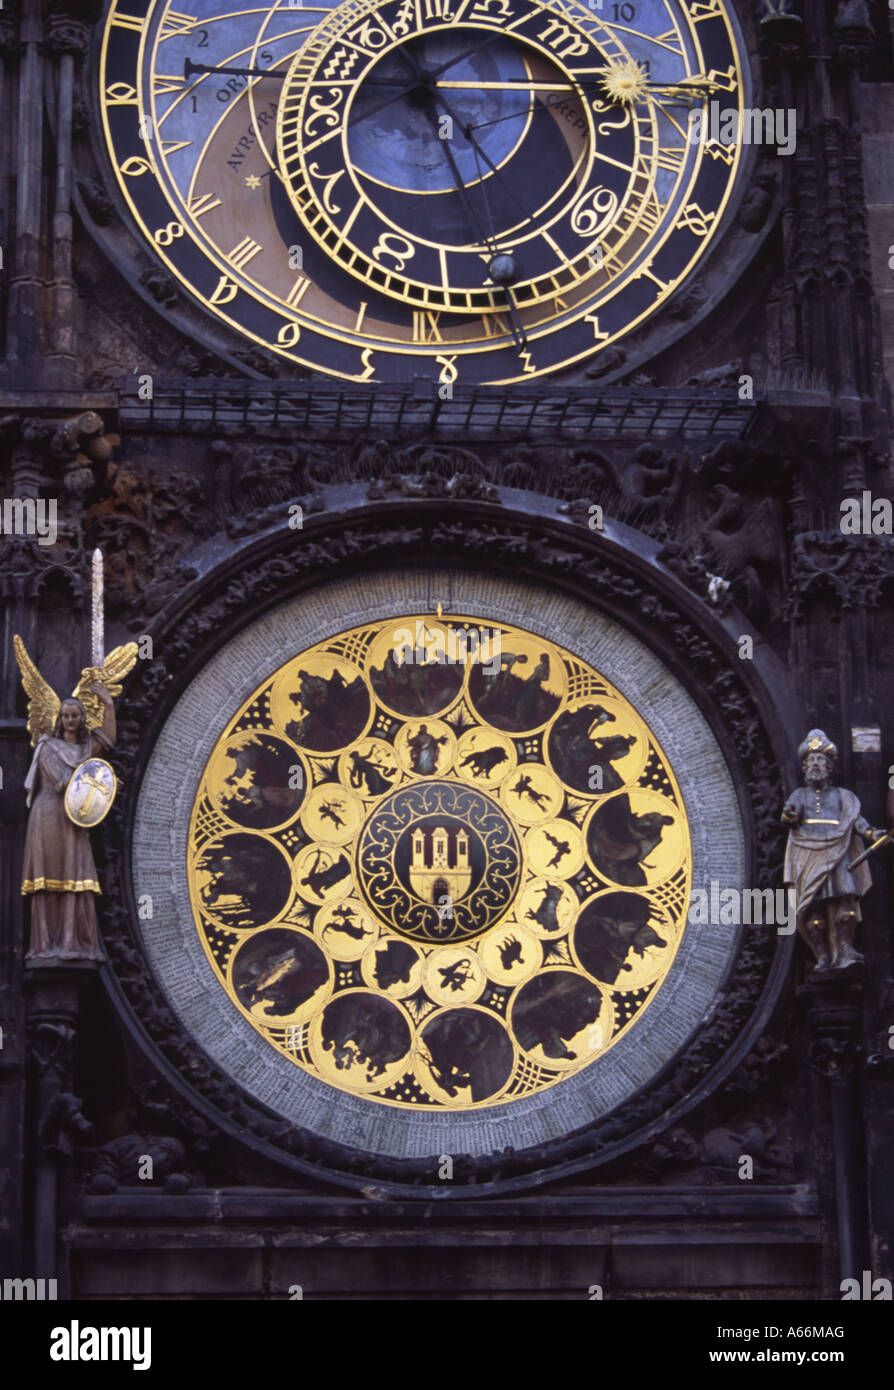 12 medallions with signs of the zodiac by Josef Manes, beneath the Astronomical Clock,  Old Town Square, Prague Stock Photo